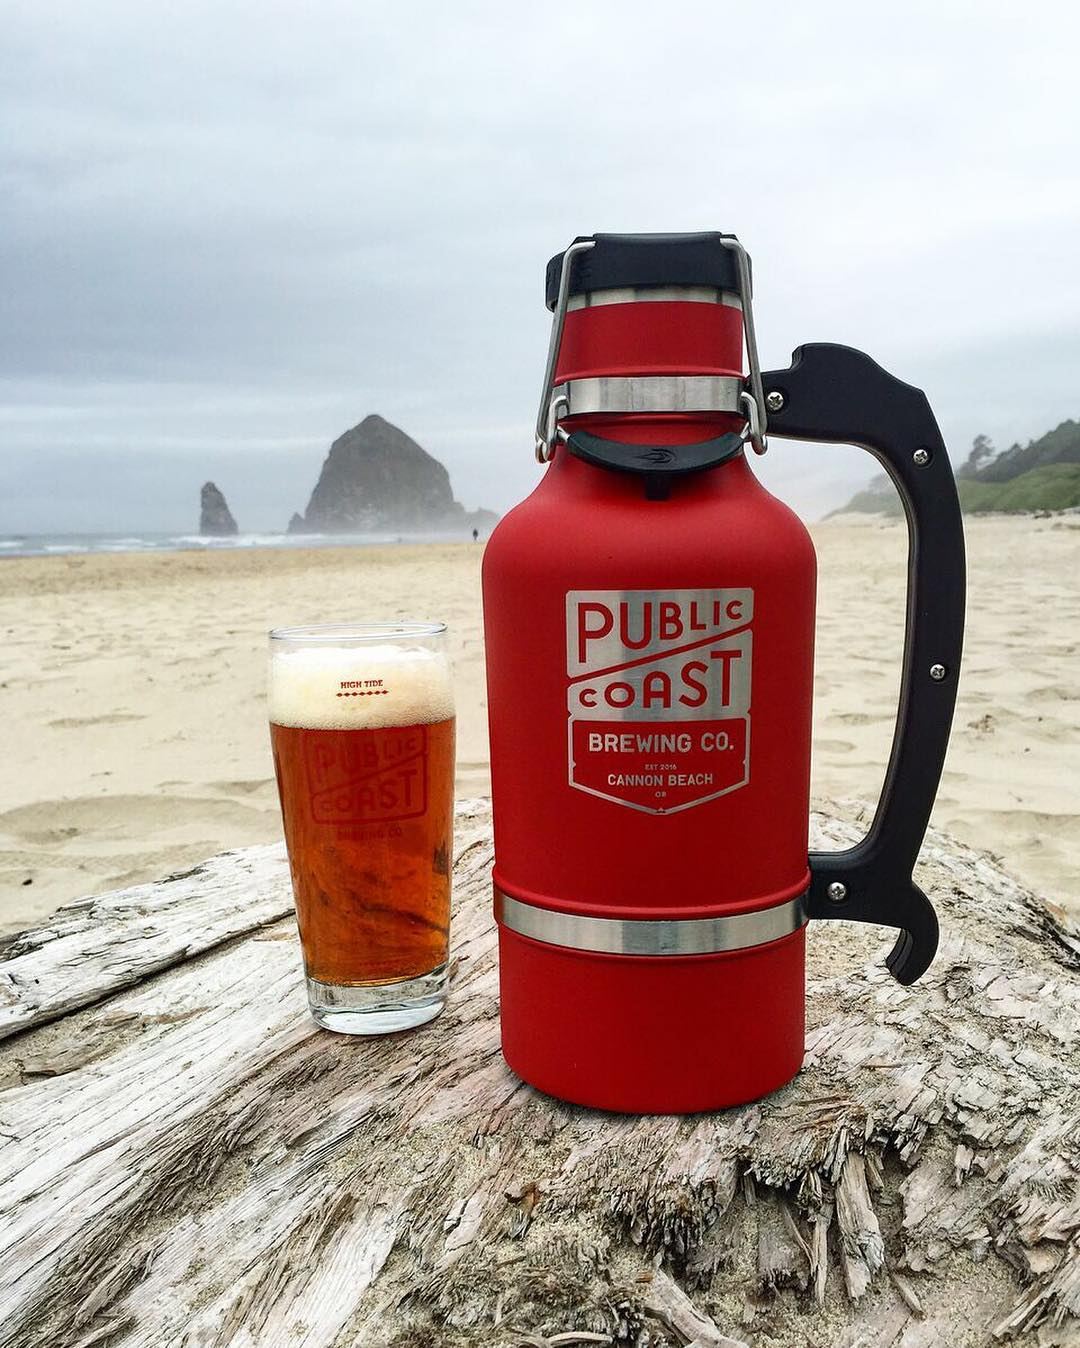 """We love your motto, @publiccoastbrewing. """"Beaches forever. Beer for everyone."""" #PublicCoast #NWBeer #OregonBeer #DrinkLocal #BrewWithAView #CannonBeach #UpperLeftUSA"""